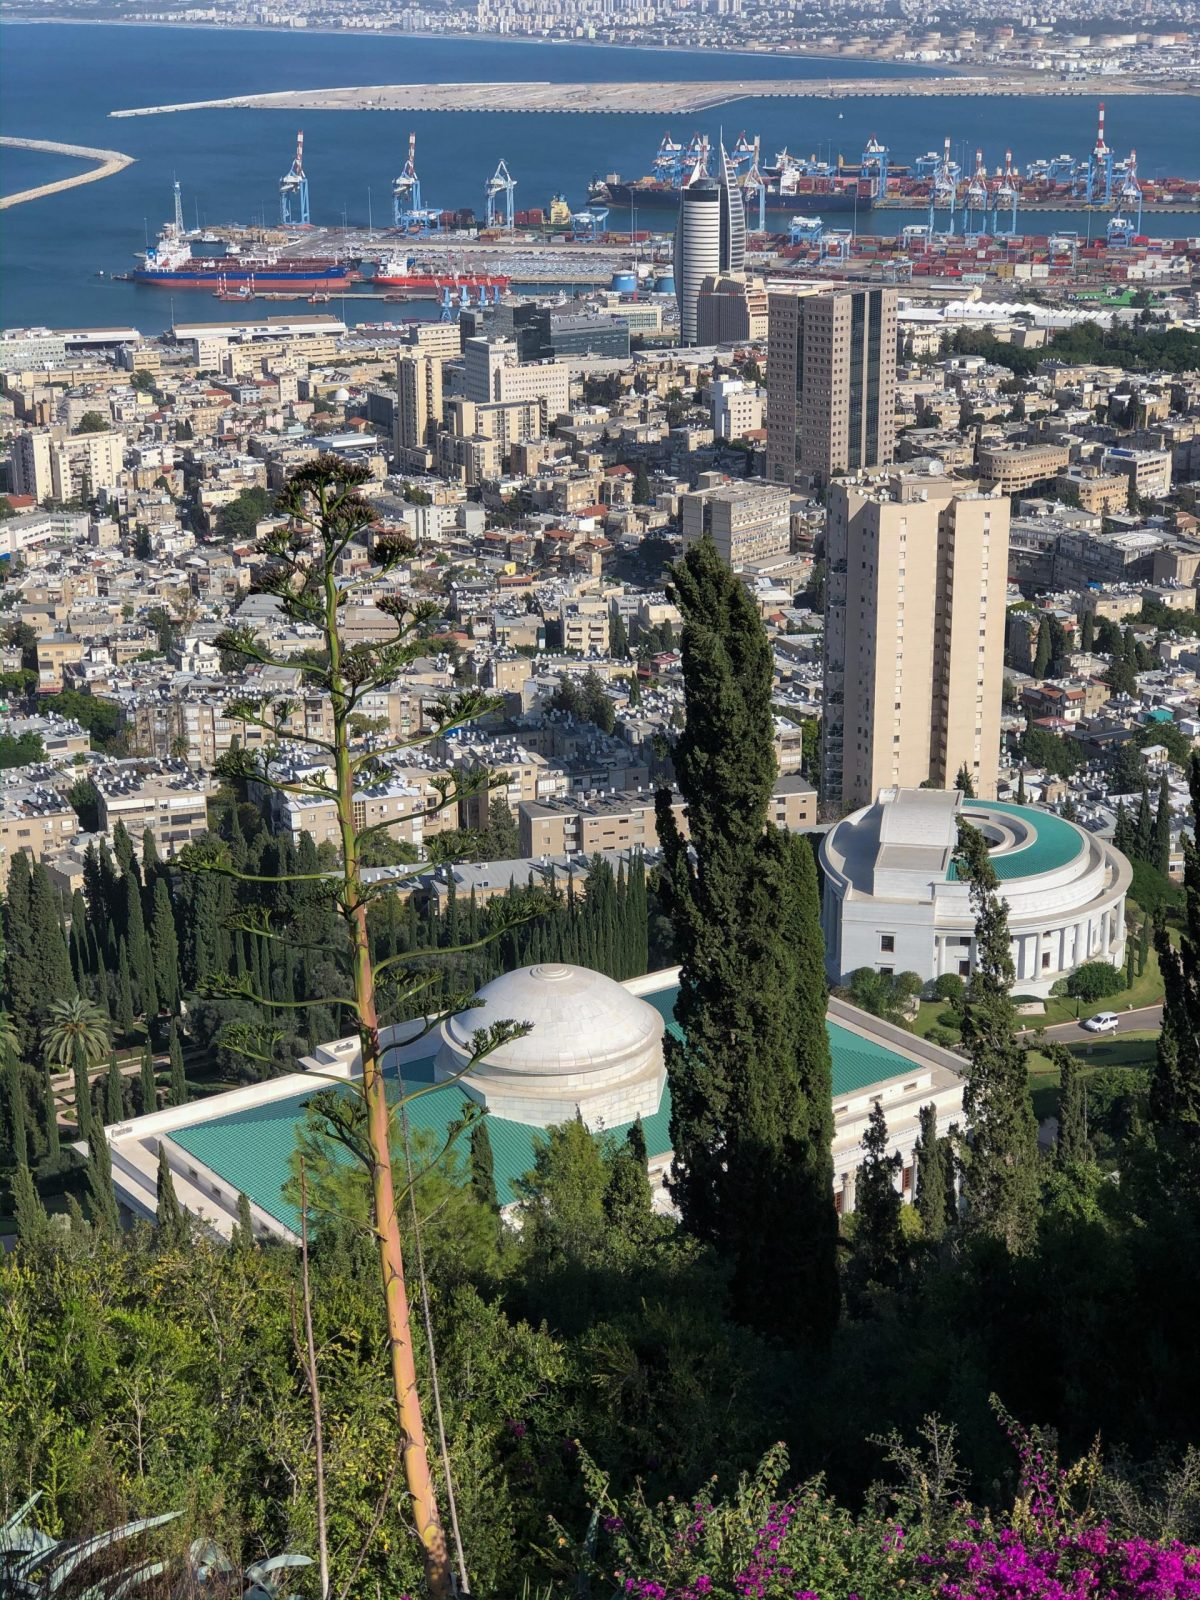 The passengers of Viking Sky on excursion to Bahai Gardens in Haifa